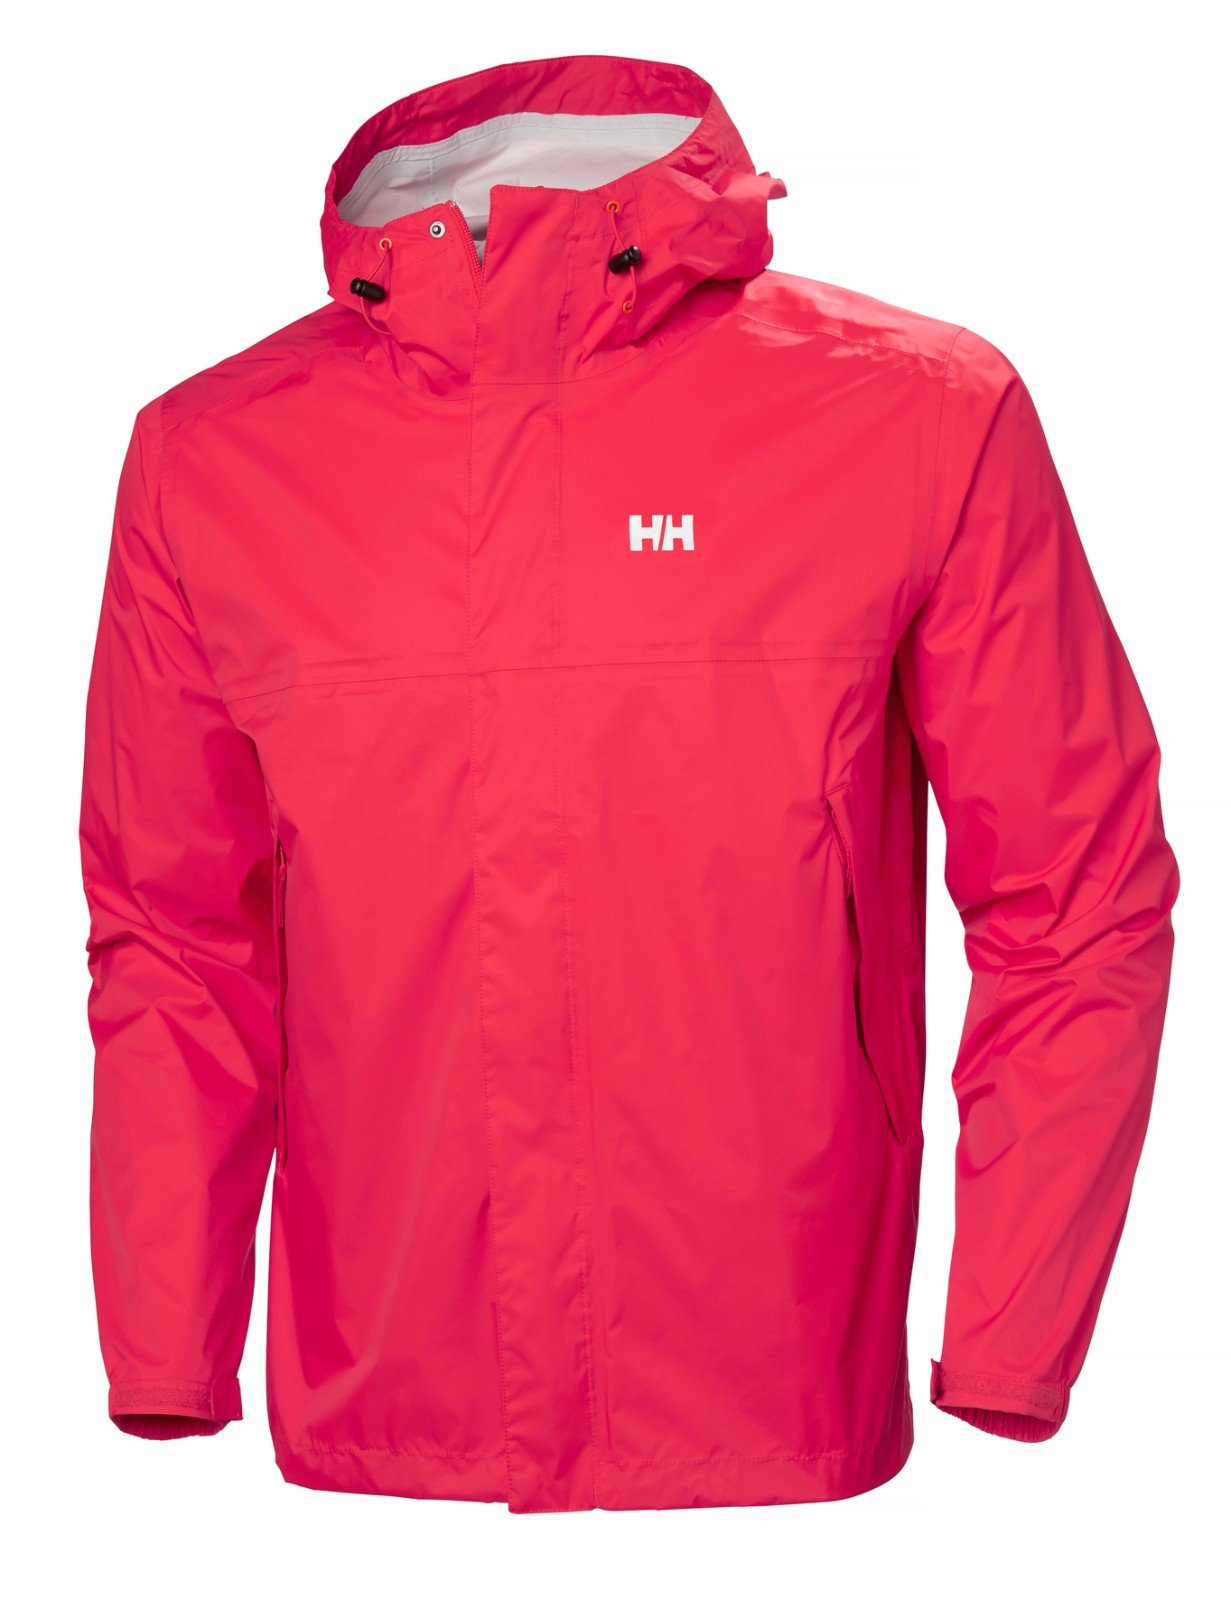 Helly Hansen 62252 Men's Loke Jacket, Red - XXXX-Large